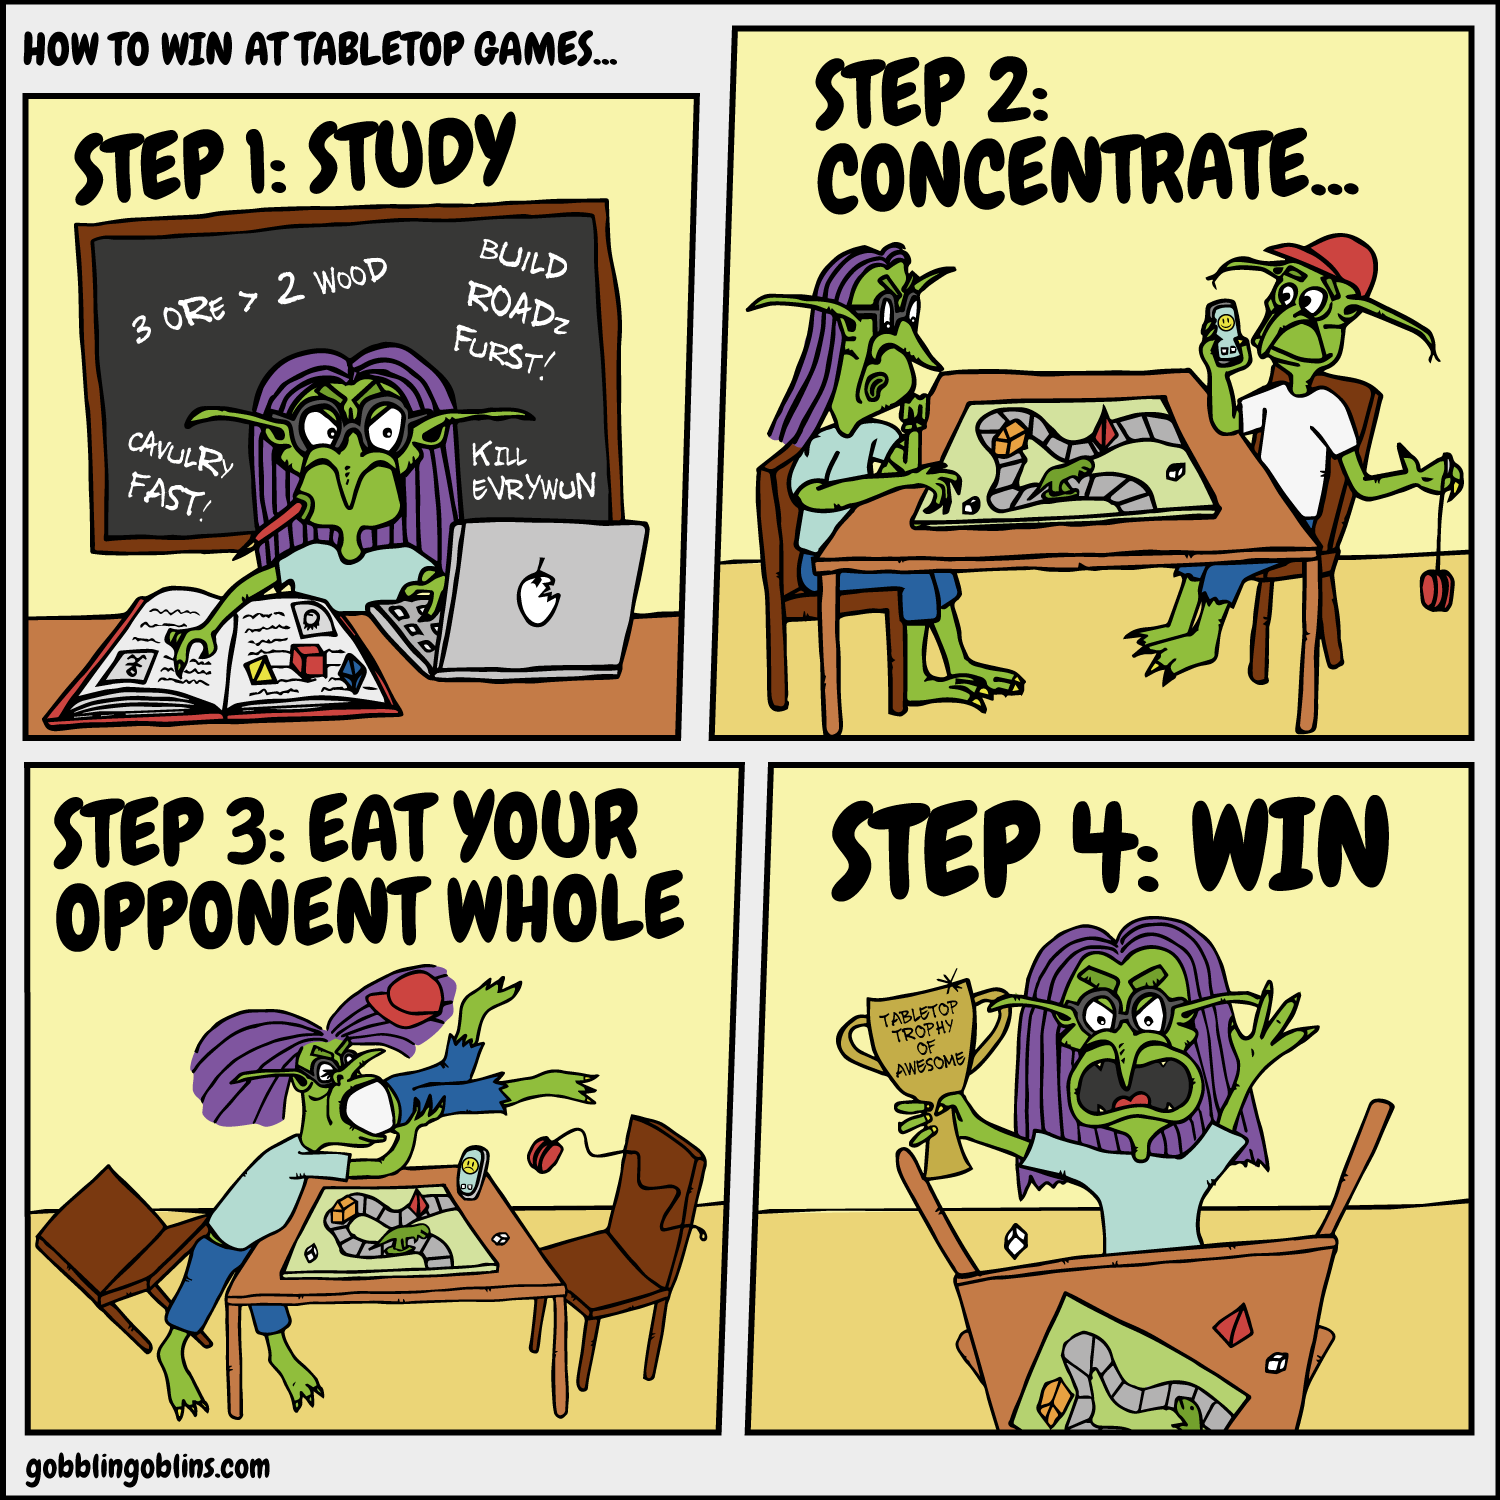 How To Win At Tabletop Games - a comic by Gobblin' Goblins